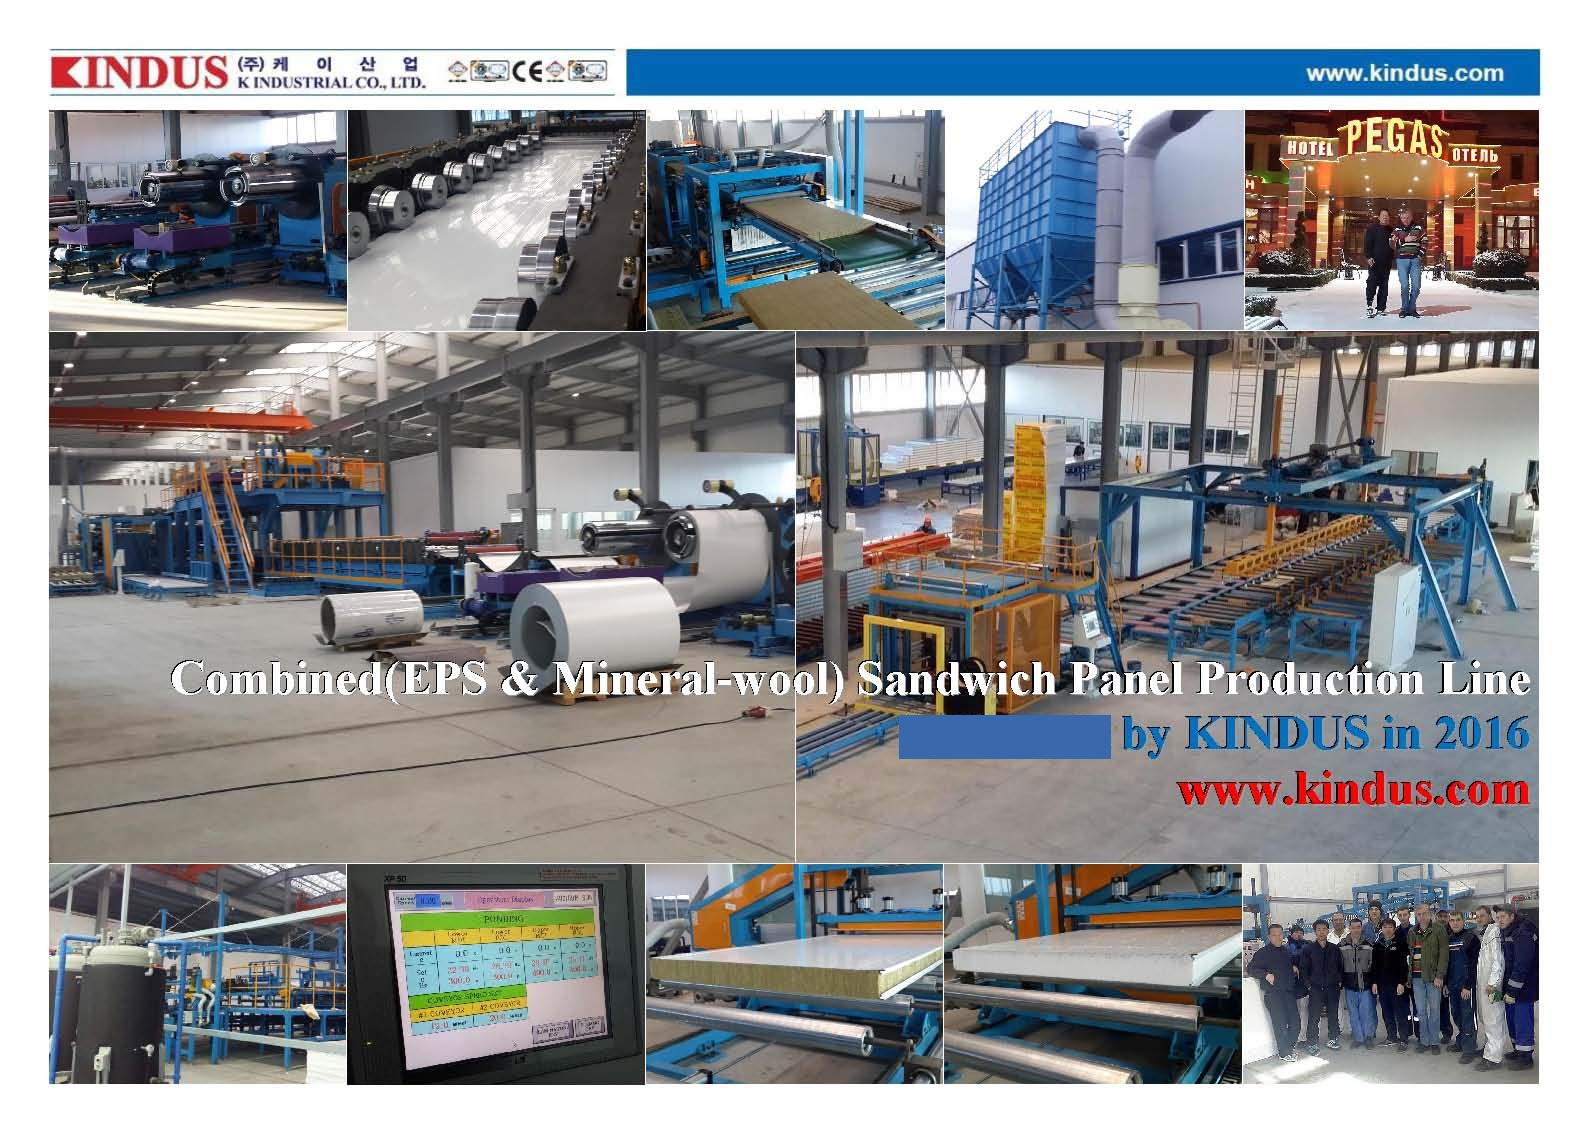 Combined sandwich panel production line (2016)